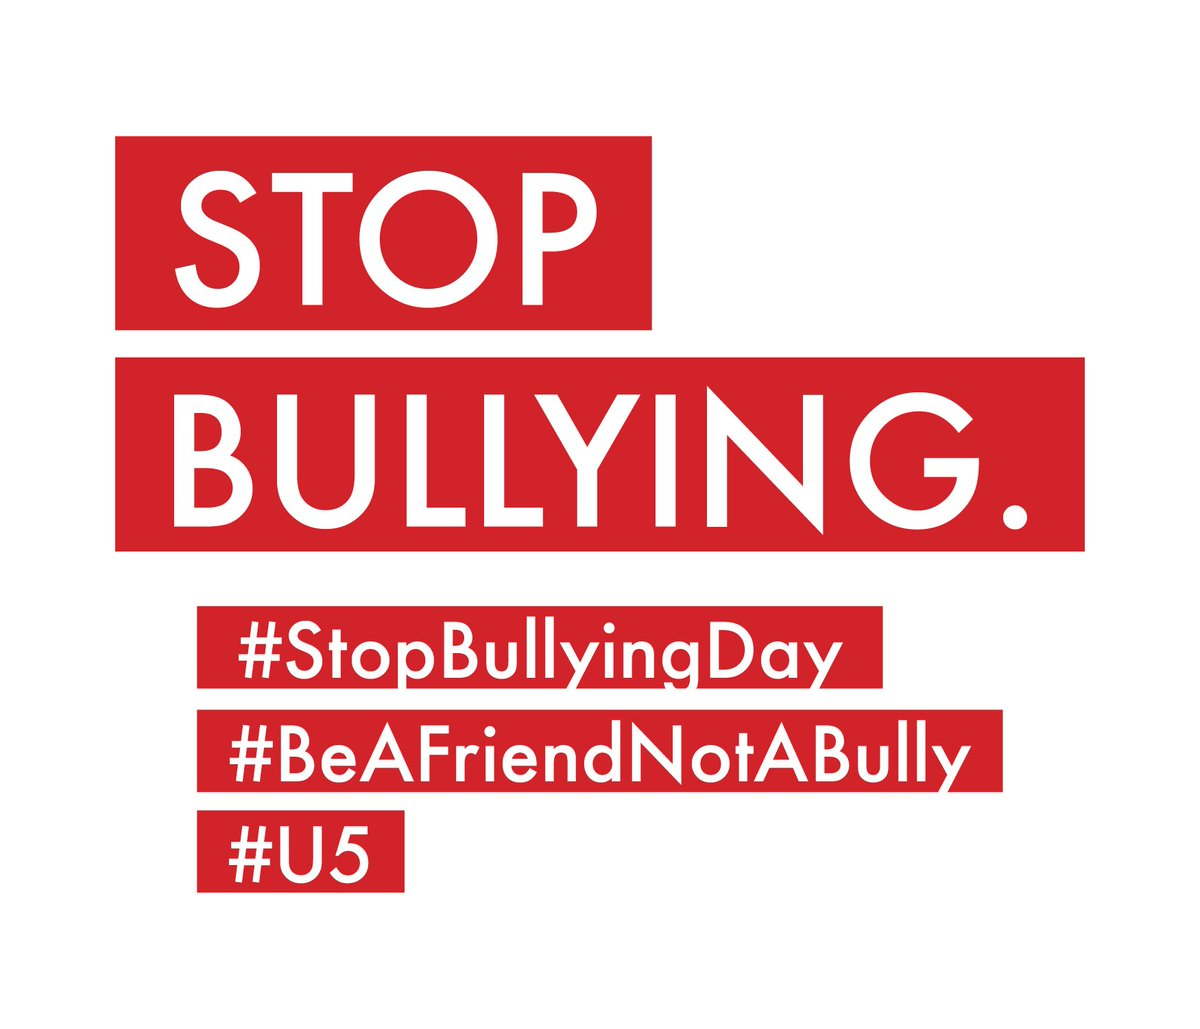 Join us in this movement in honor of #StopBullyingDay and help us to eliminate bullying. #BeAFriendNotABully #U5pic.twitter.com/29DanN0P0c